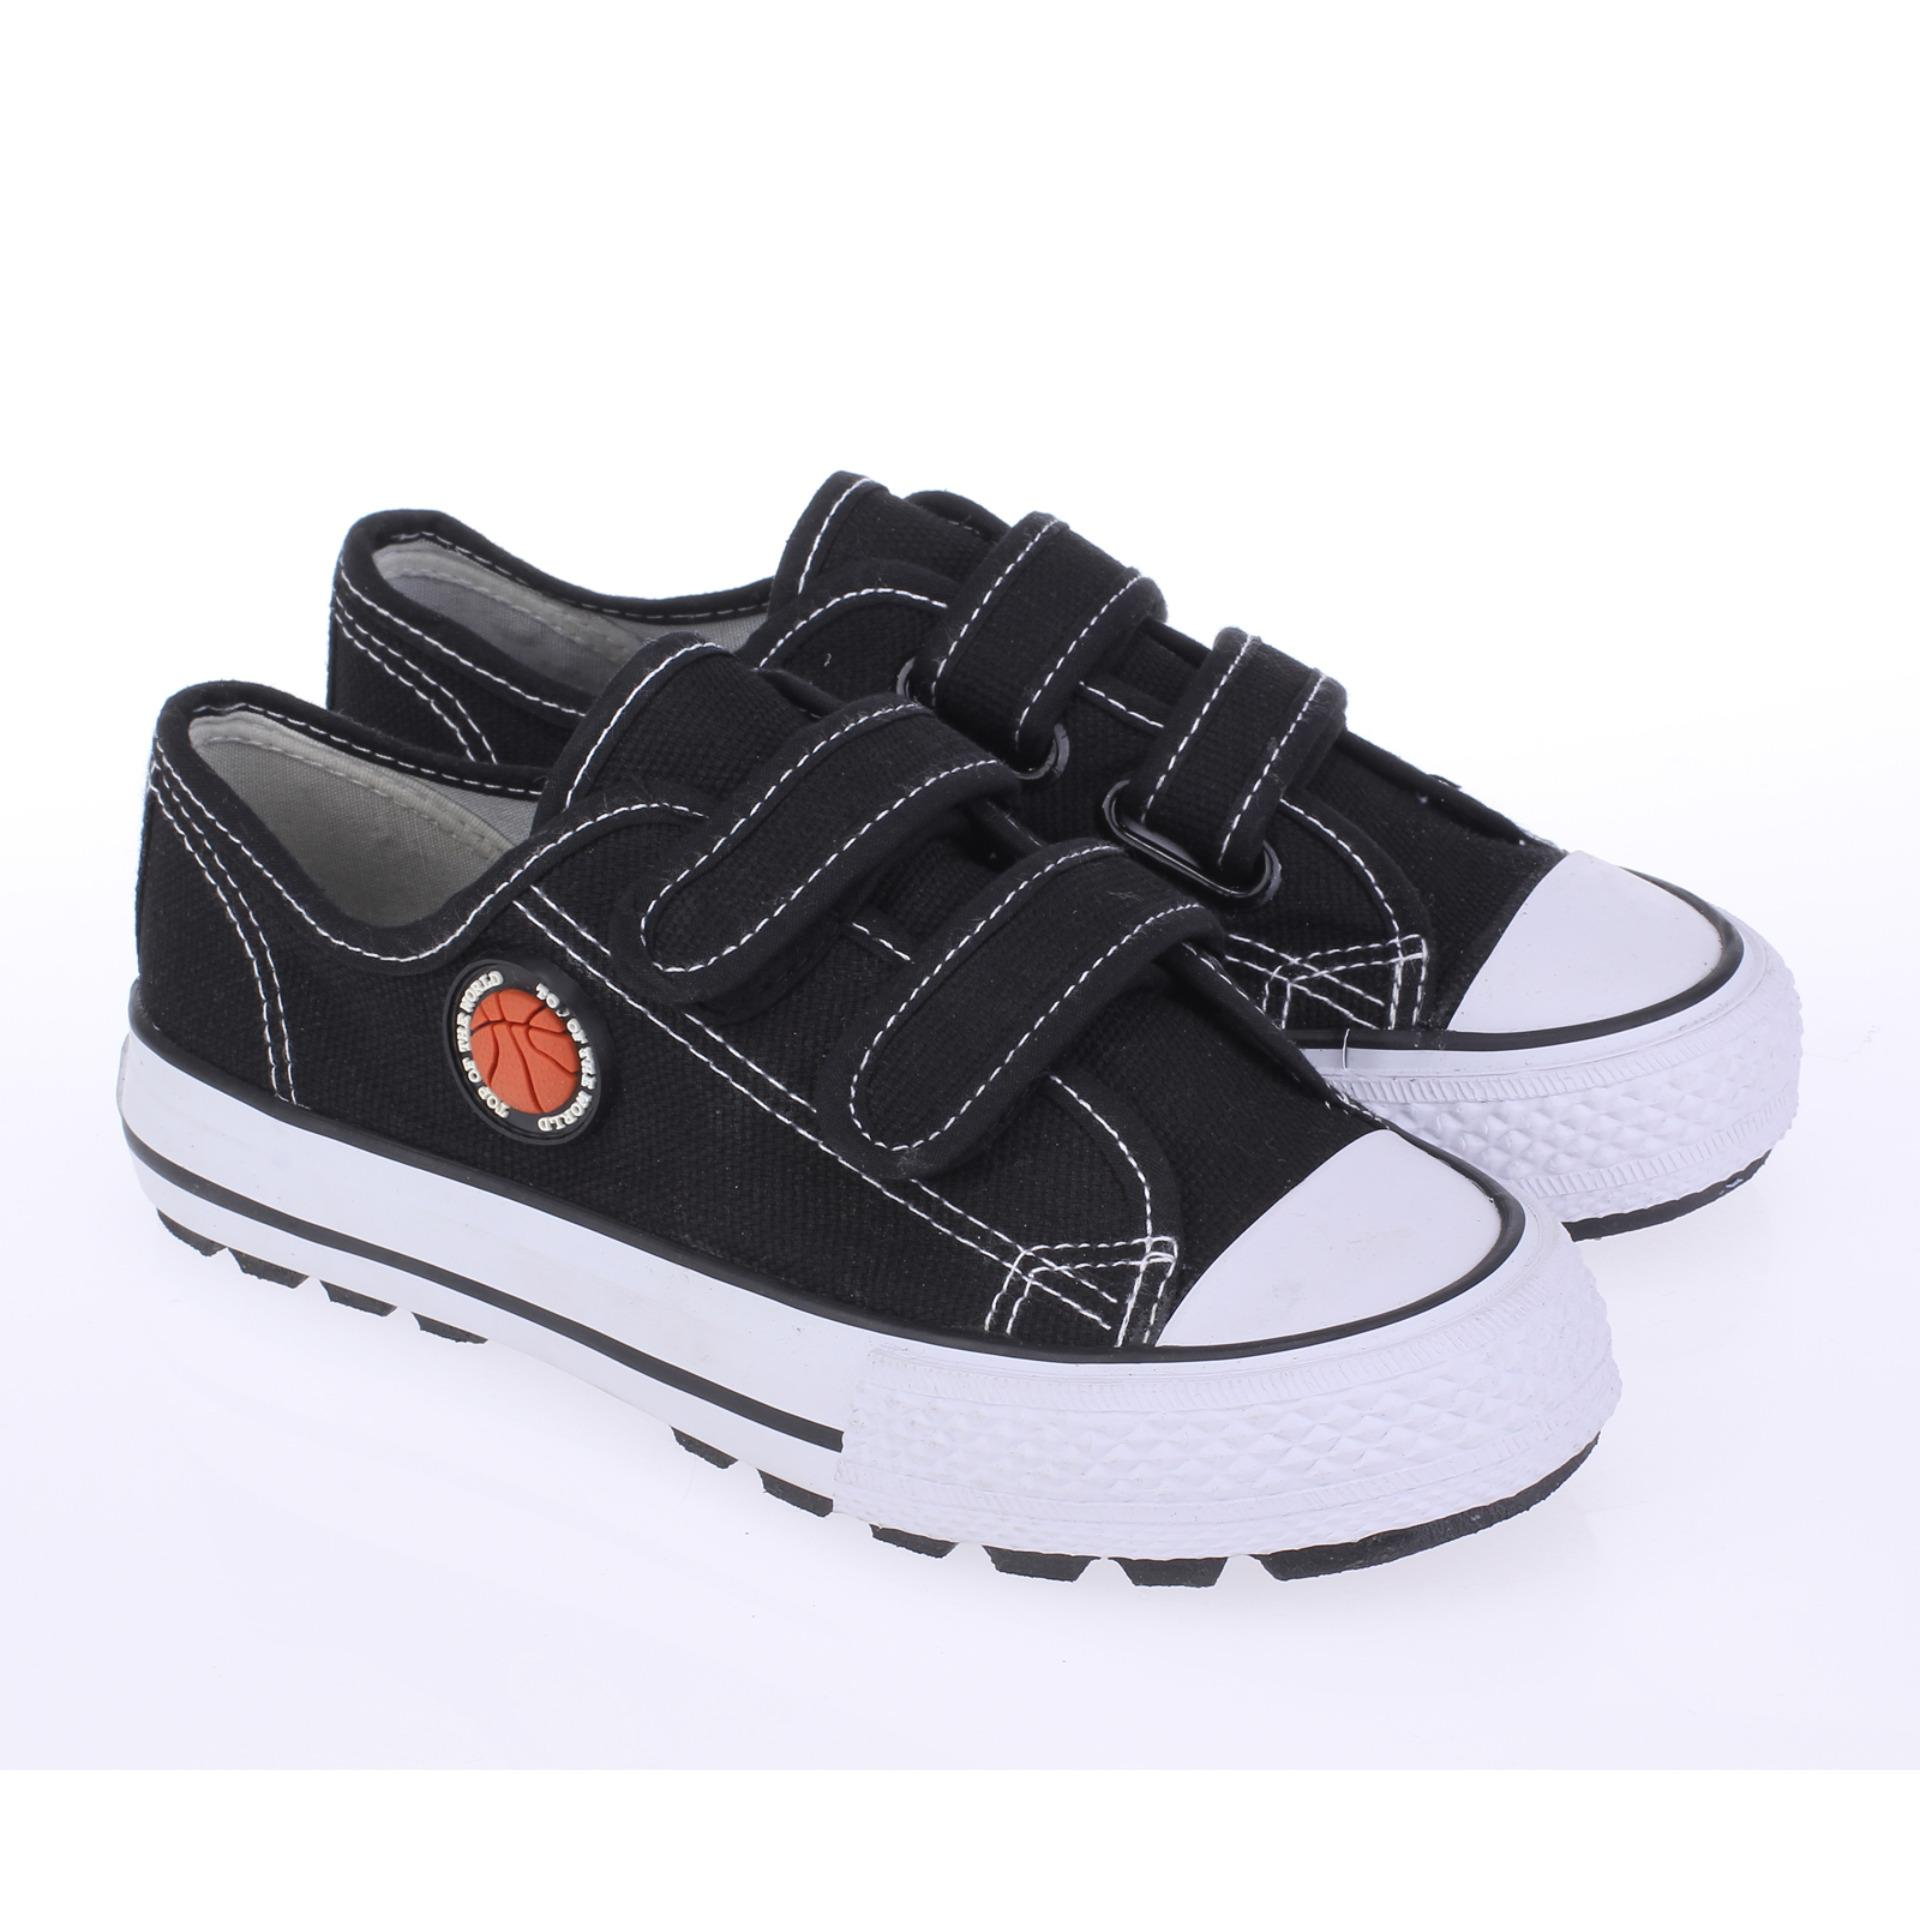 Promo Catenzo Junior Sepatu Anak Cja 101 Casual Catenzo Junior